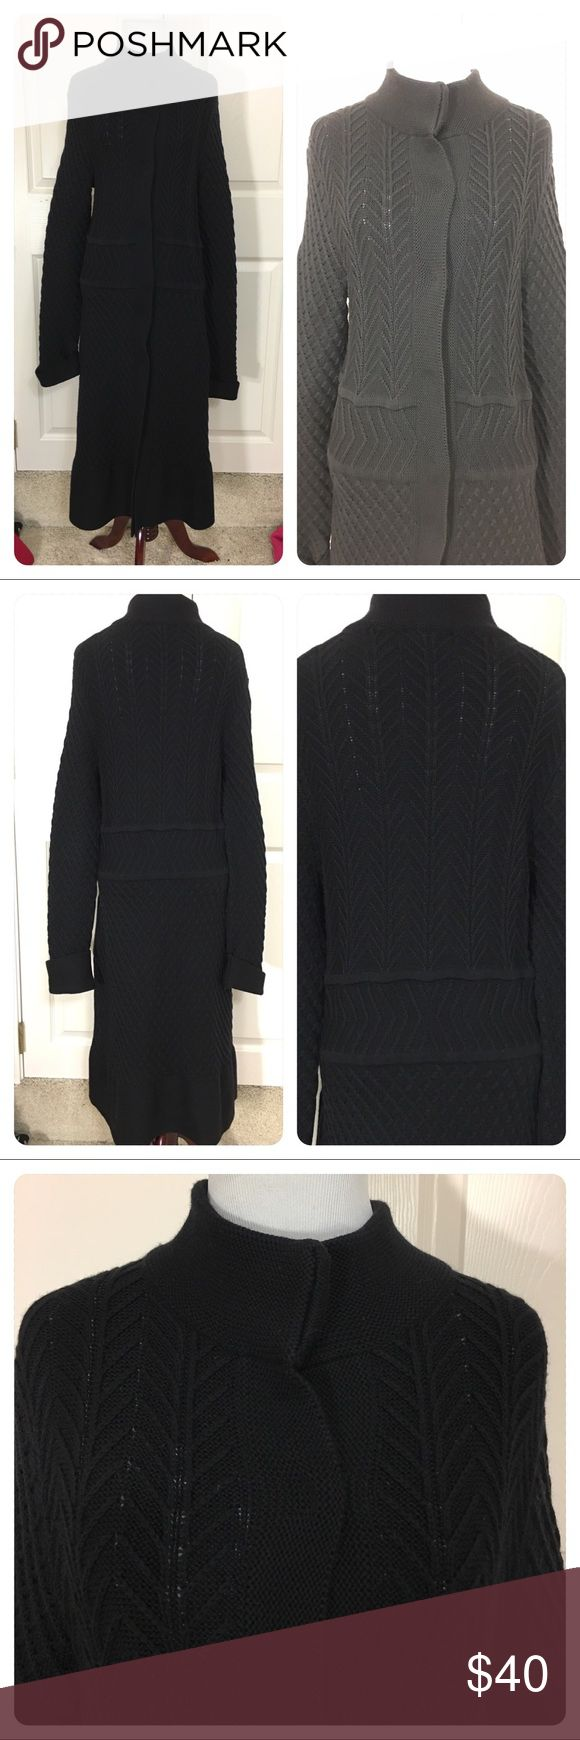 Faconnable long sweater coat Great long merino wool sweater coat from high end designer Faconnable. Pretty sweater design. Cuffed sleeves. Hidden snap fronts. Light wear - no flaws noted. faconnable Sweaters Cardigans